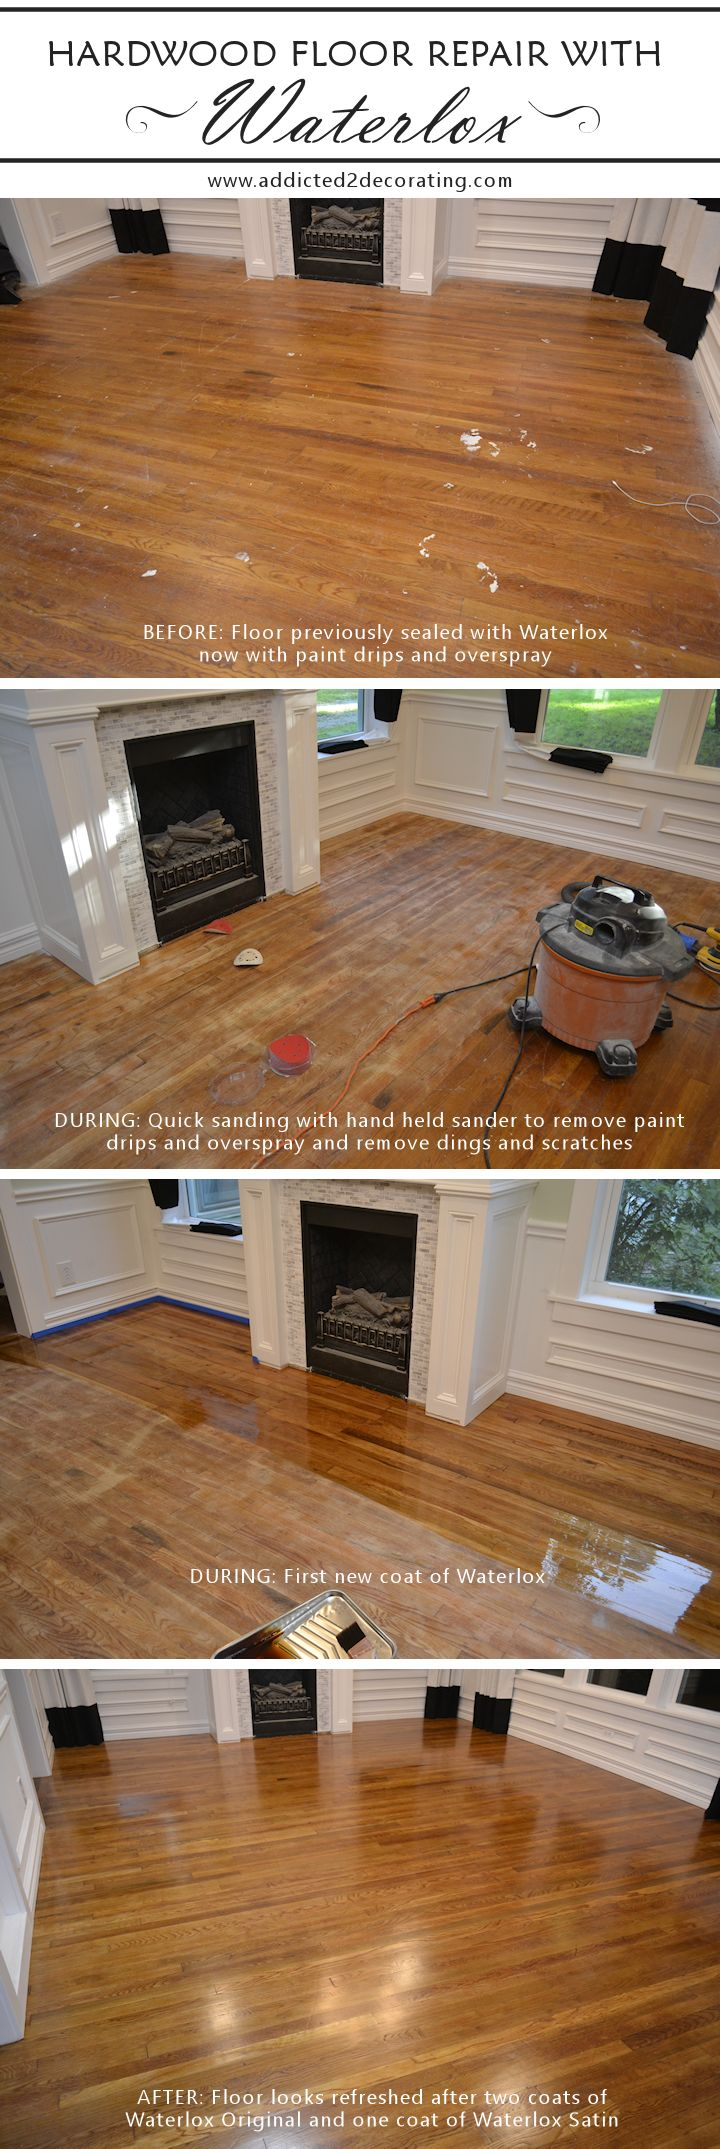 How to remove paint from hardwood floors - 17 Best Ideas About Hardwood Floor Refinishing On Pinterest Refinishing Wood Floors Wood Refinishing And Floor Refinishing